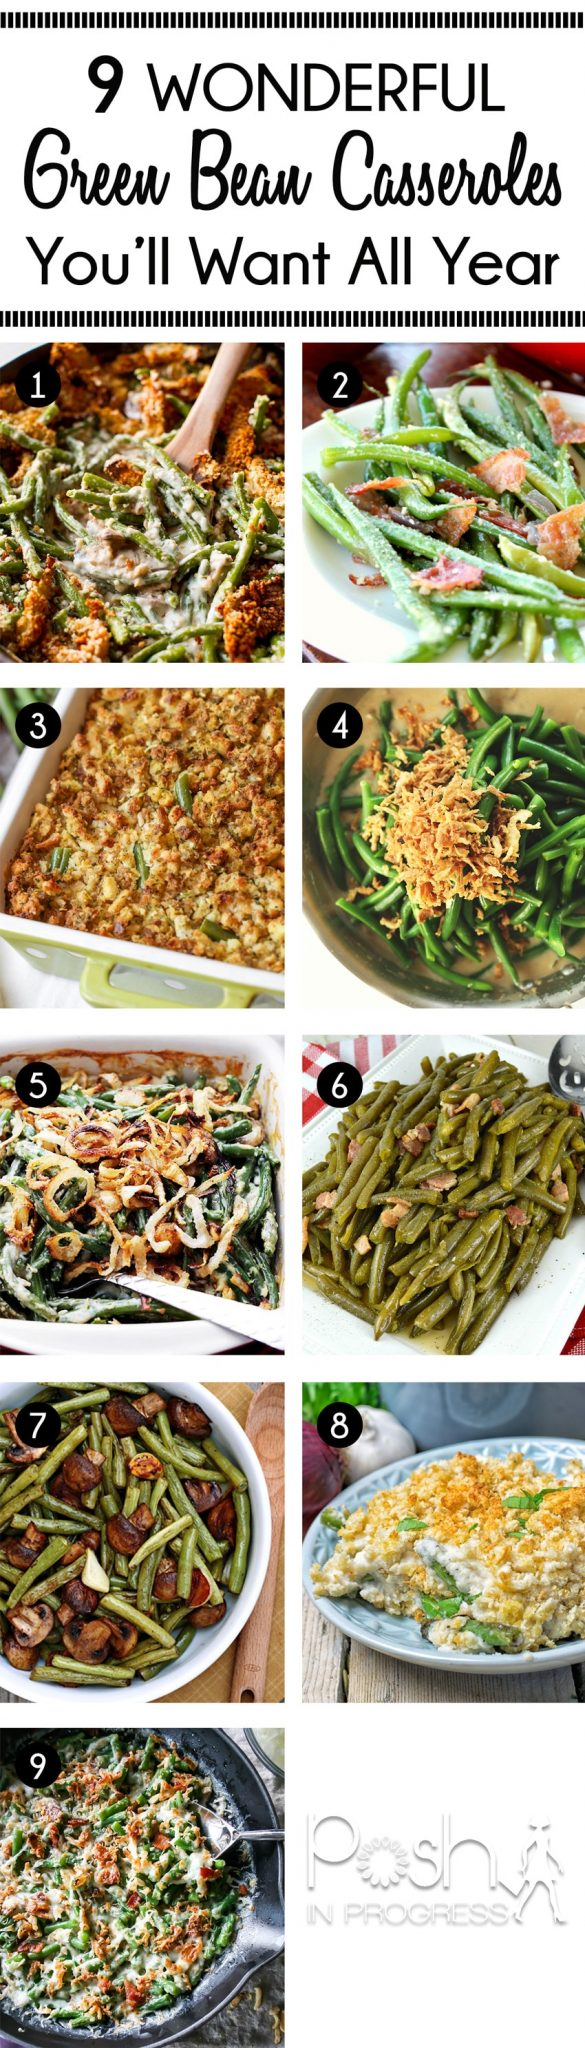 9 Green Bean Casserole Recipes That Will Make You Want Them All Year